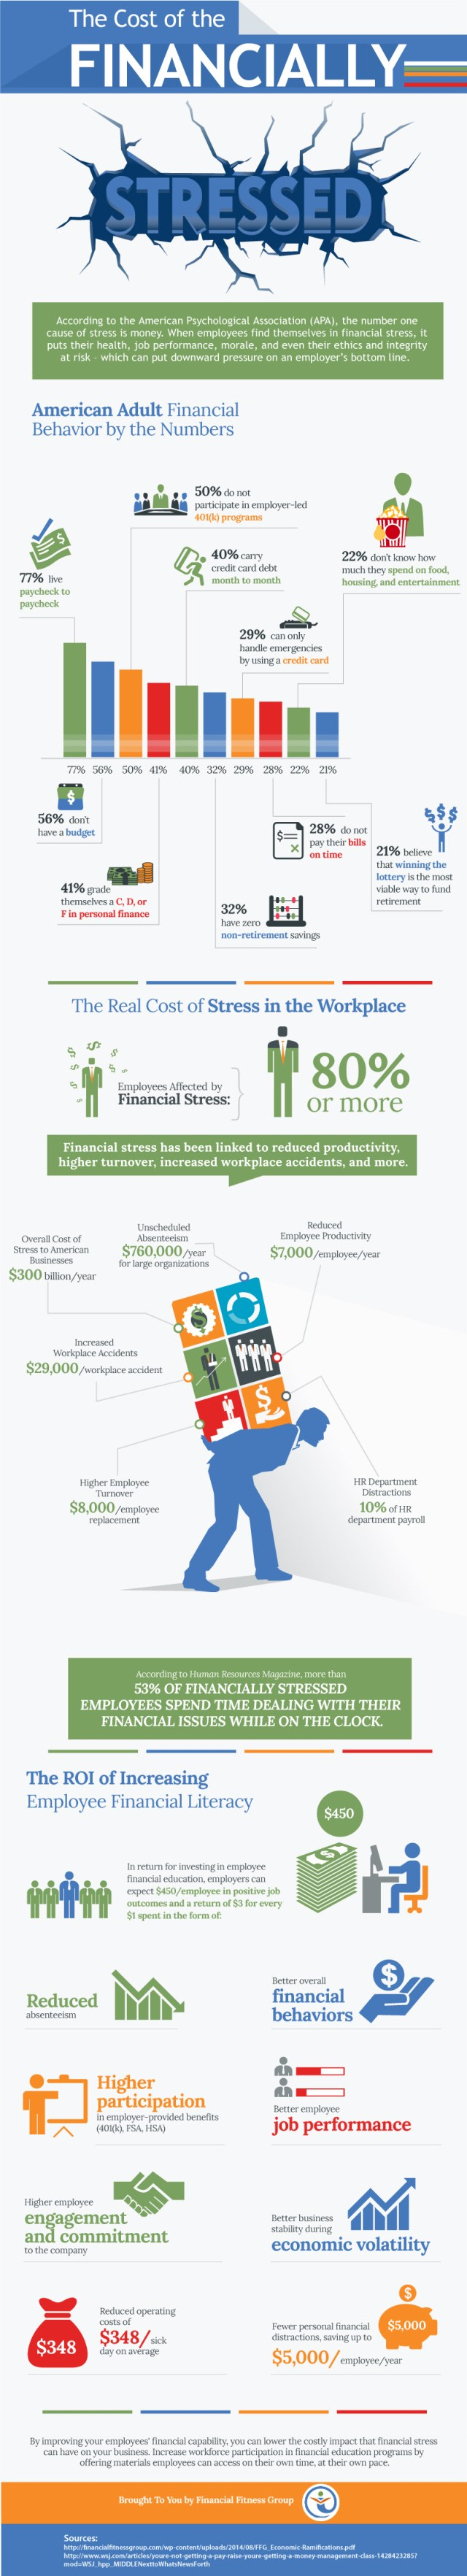 the-cost-of-the-financially-stressed-infographic_571a614aae1bb